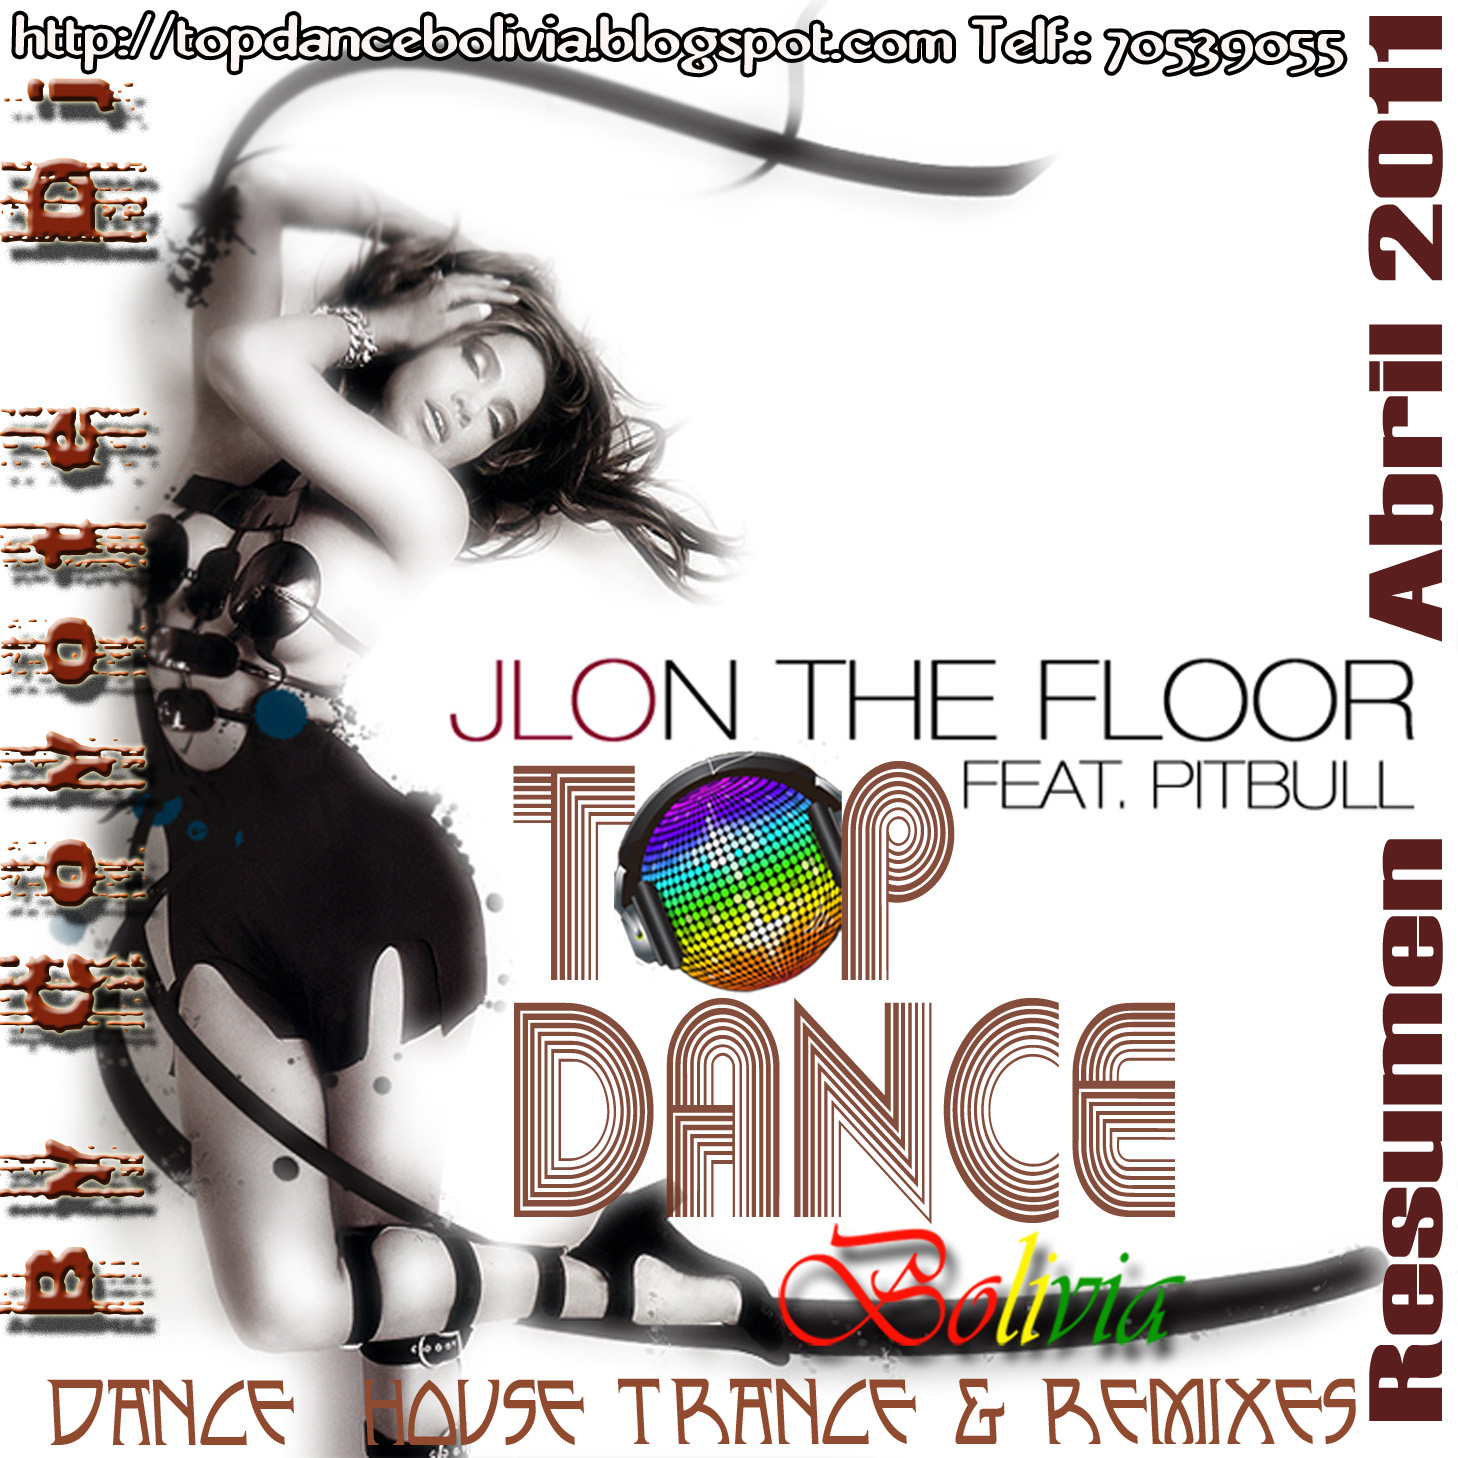 http://2.bp.blogspot.com/-syuzl3gIgJI/TbsX9HKGmTI/AAAAAAAABA0/i_UnjBH7uc4/s1600/Top+Dance+Abril+2011+Jenifer+Lopez+On+The+Floor.jpg